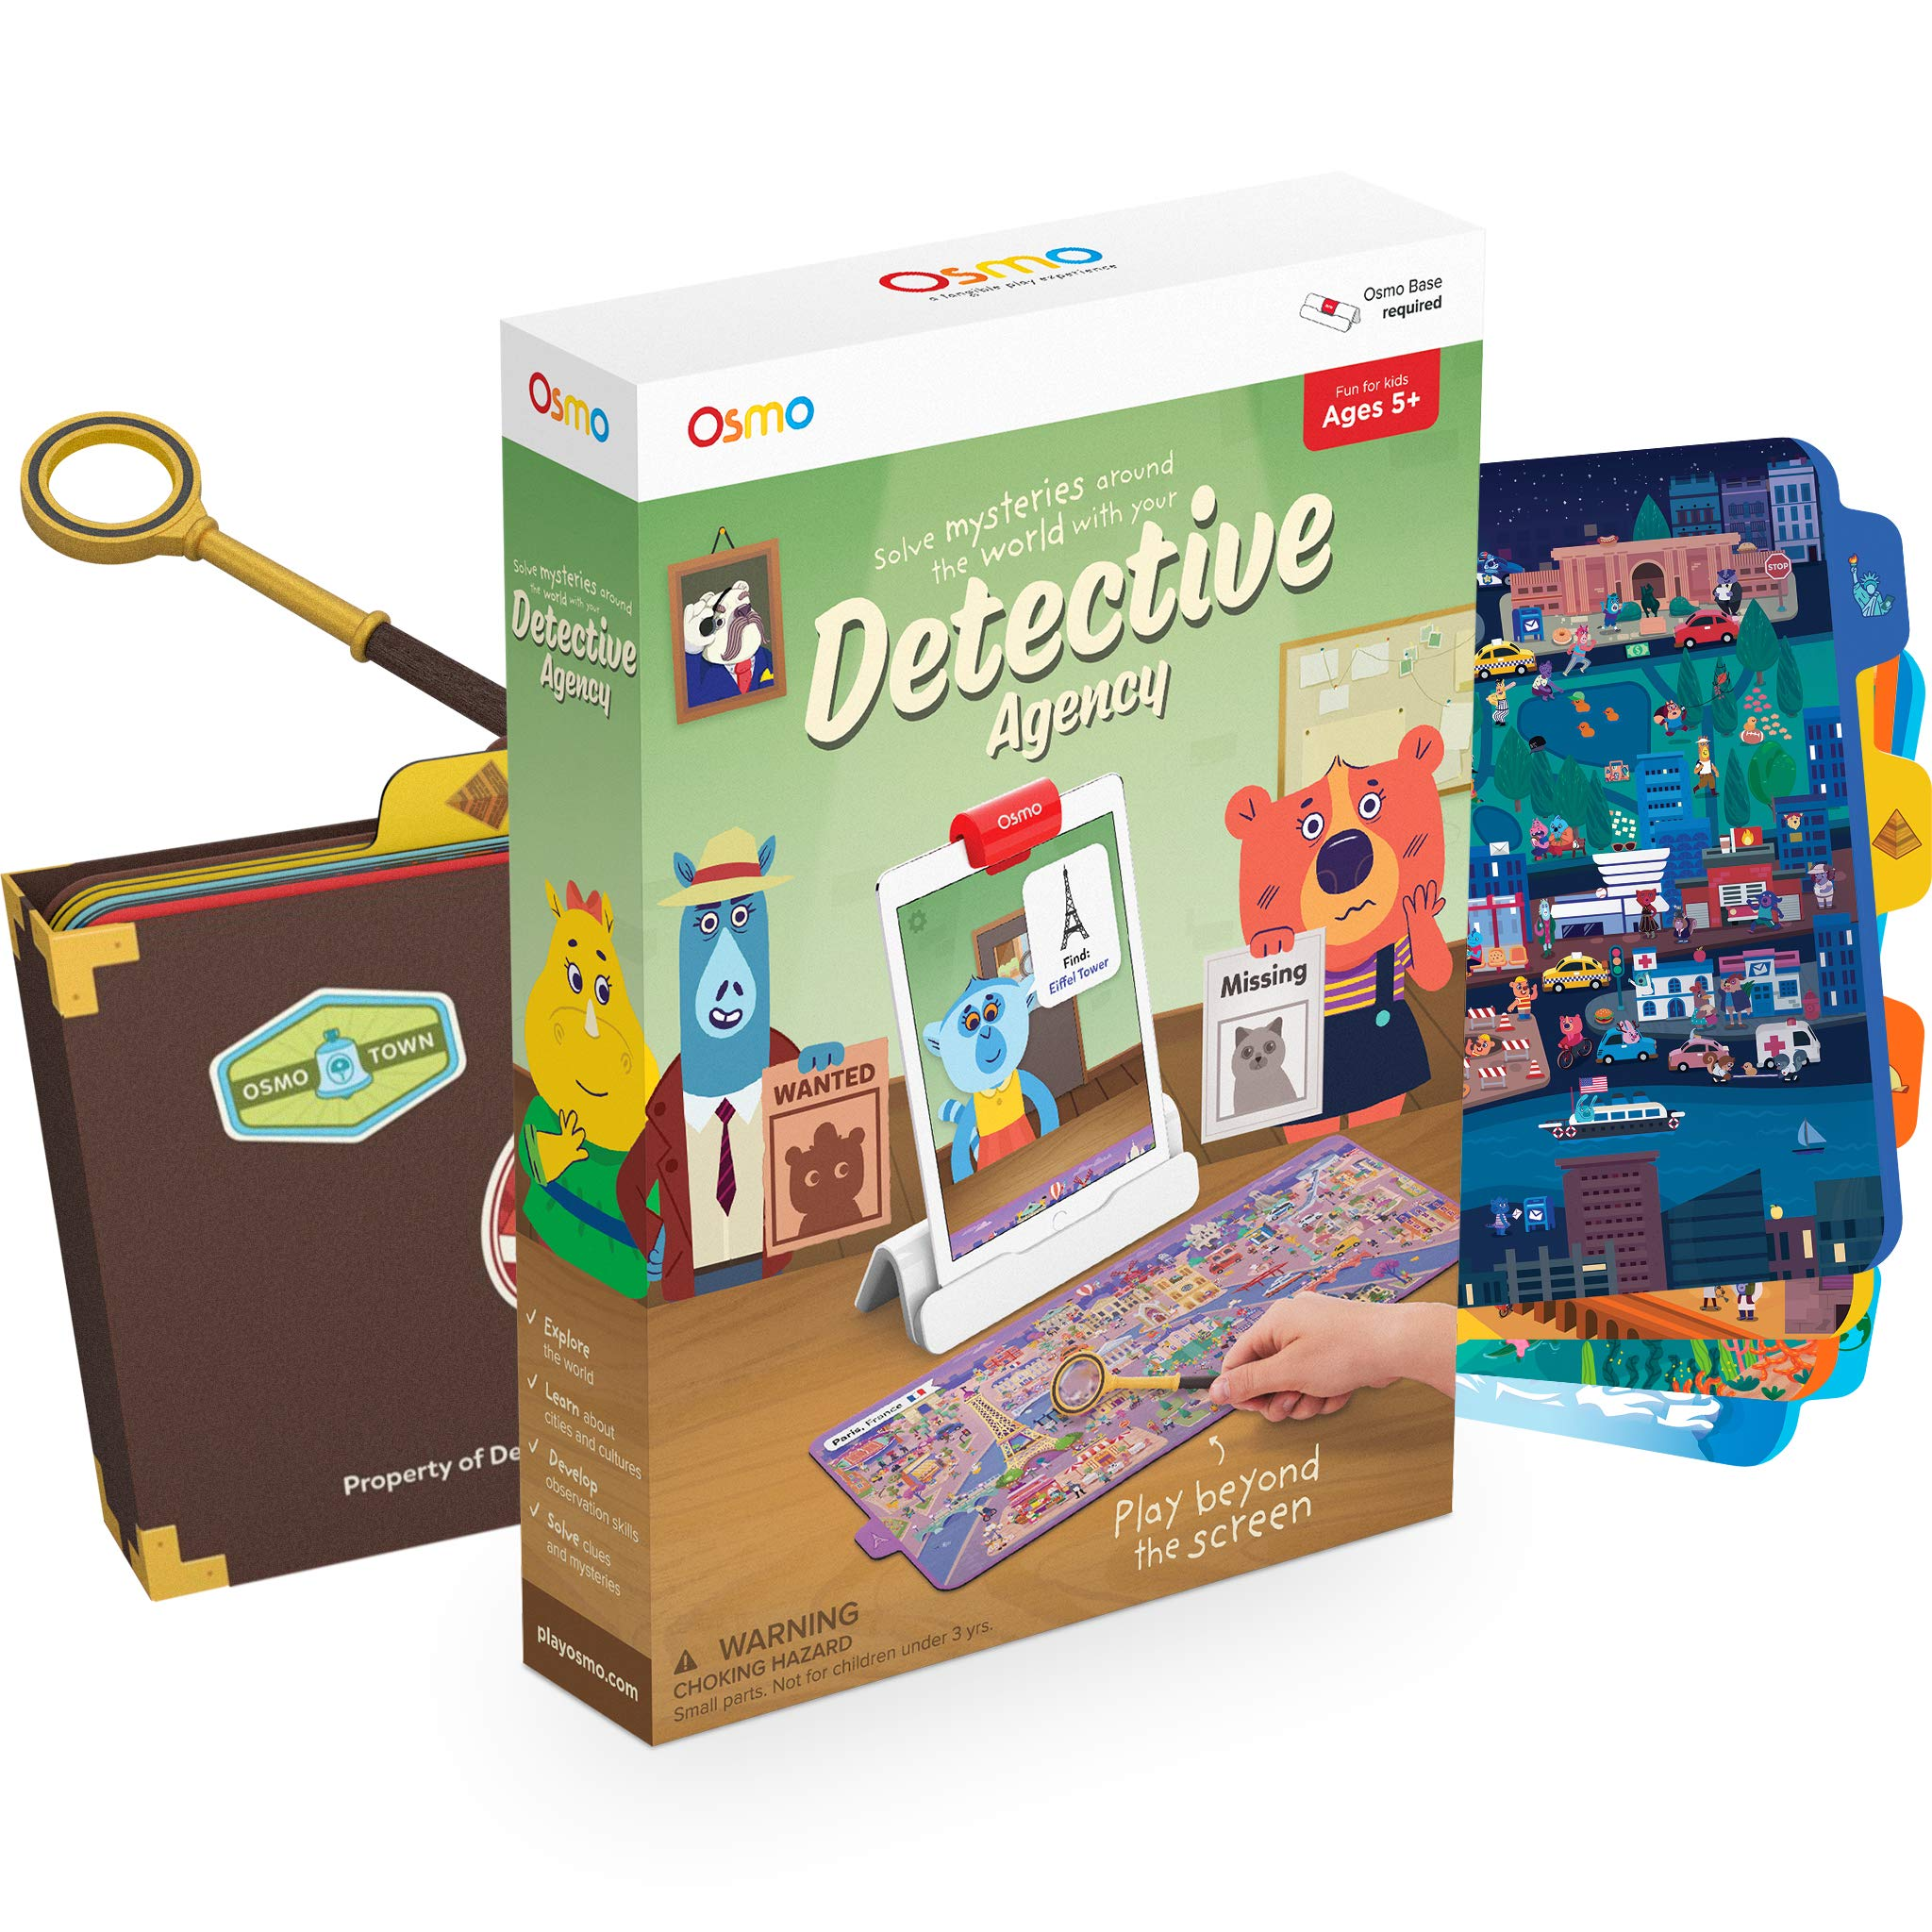 Osmo - Detective Agency: A Search & Find Mystery Game - Ages 5-12 - Explore The World - For iPad and Fire Tablet (Osmo Base Required) by Osmo